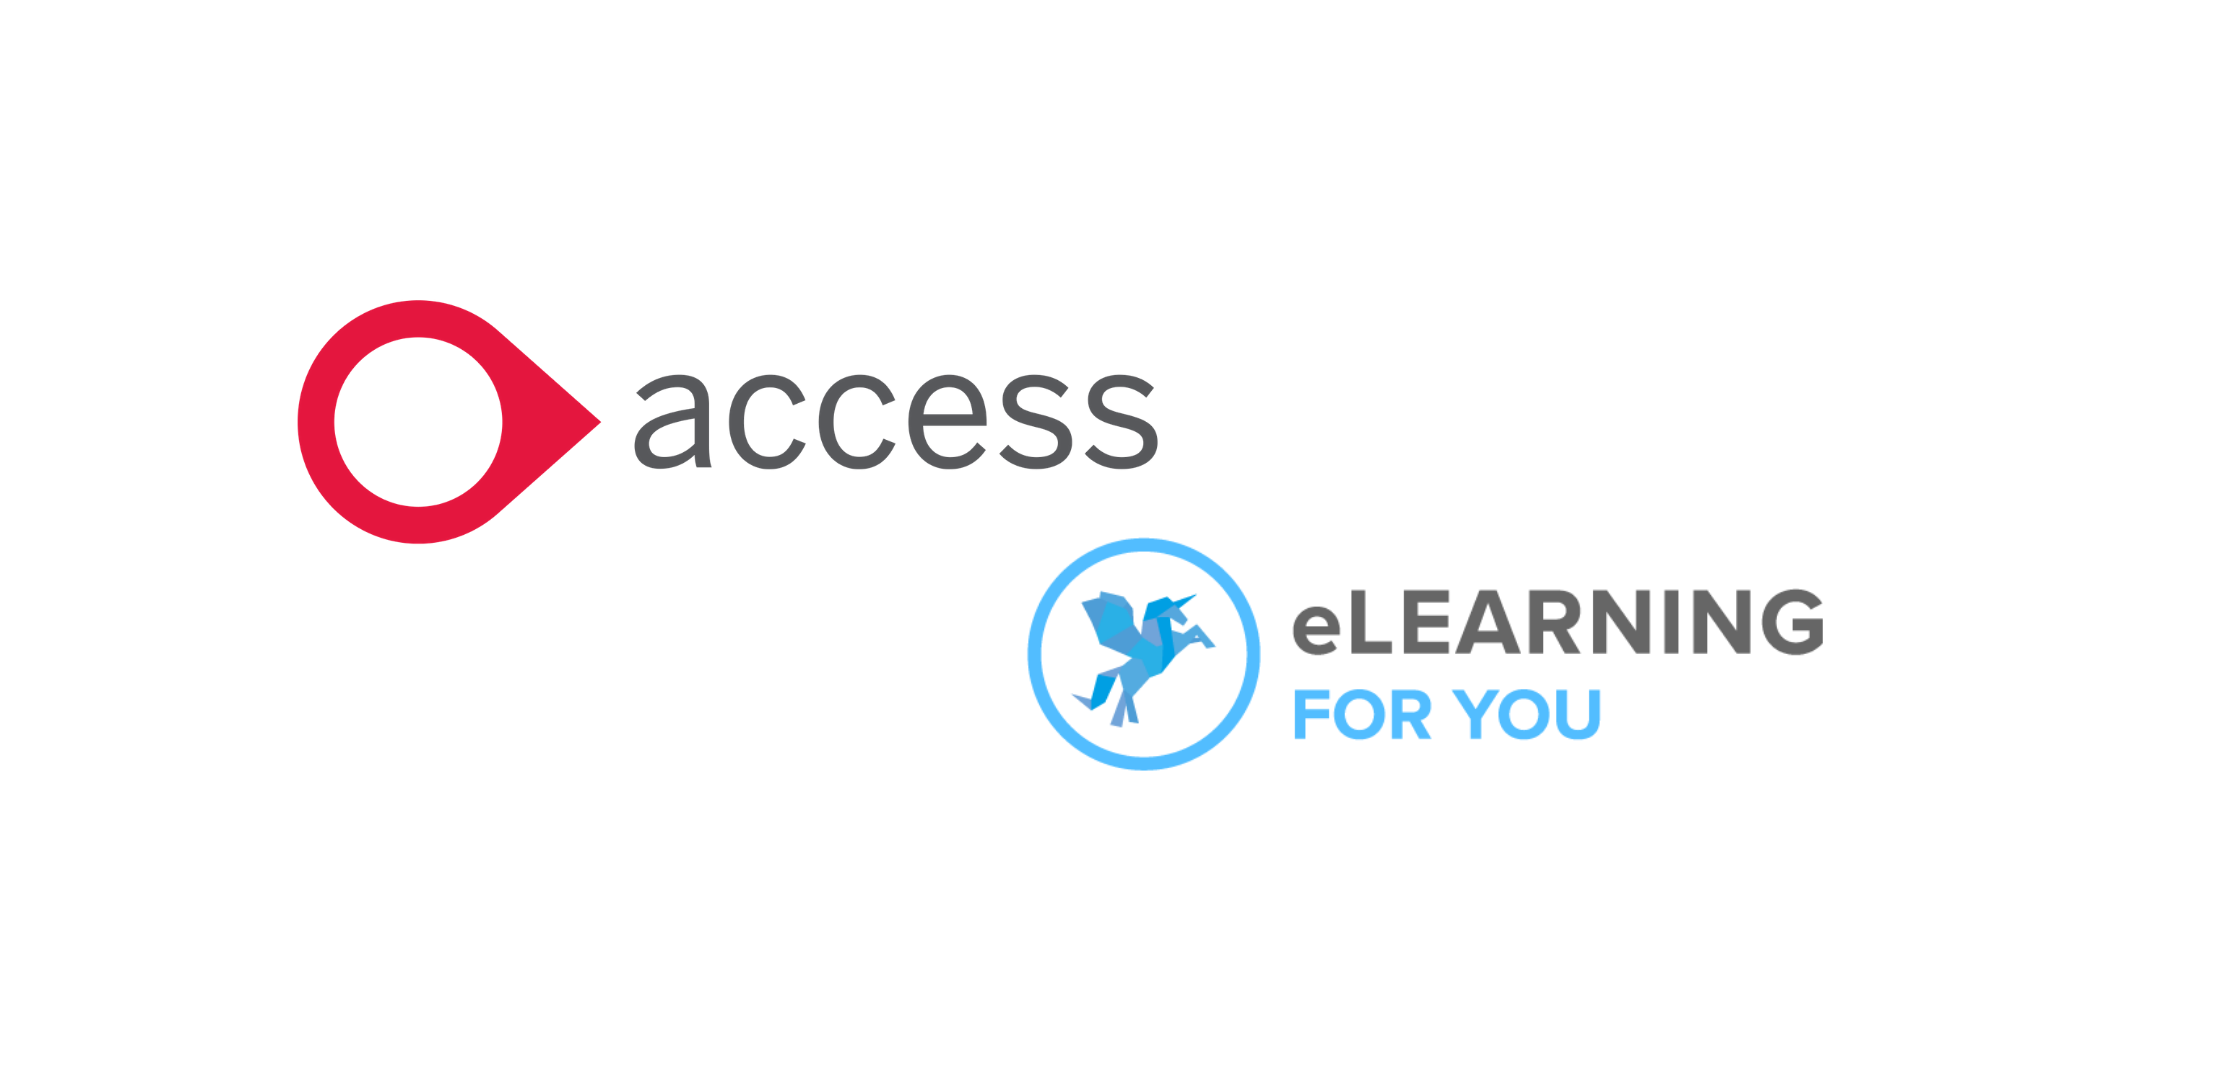 Access and eLearning For You